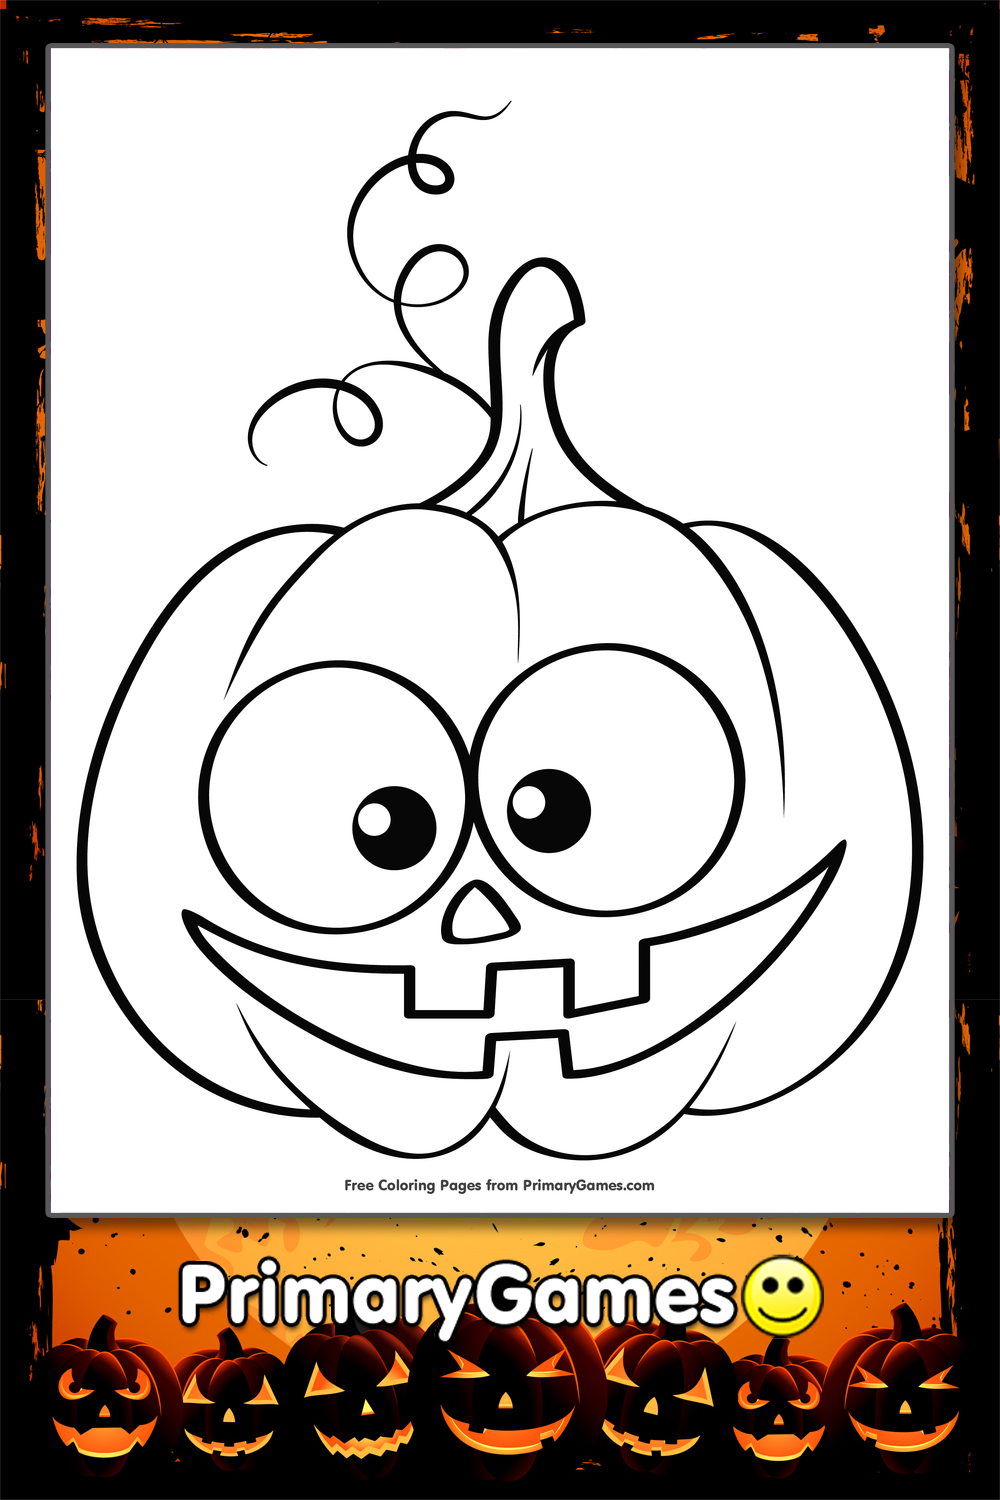 Cute Jack-O-Lantern Coloring Page | Printable Halloween ...